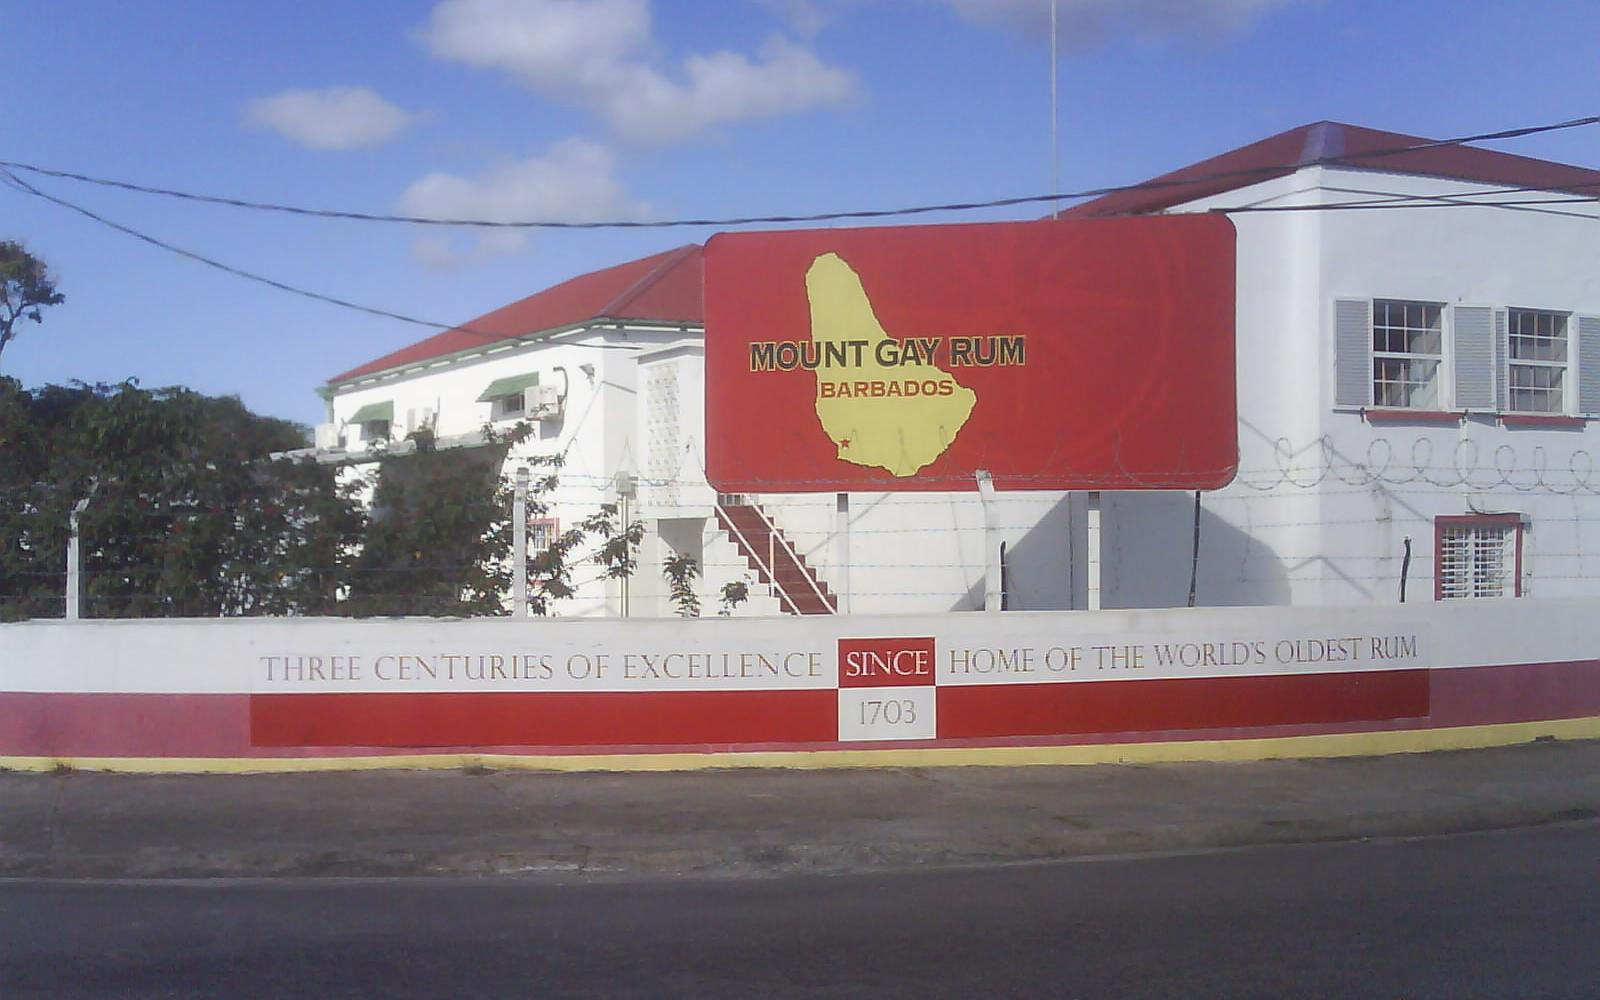 The Mount Gay Rum visitors centre claims to be the world's oldest remaining Rum company, with earliest confirmed deed from 1703.